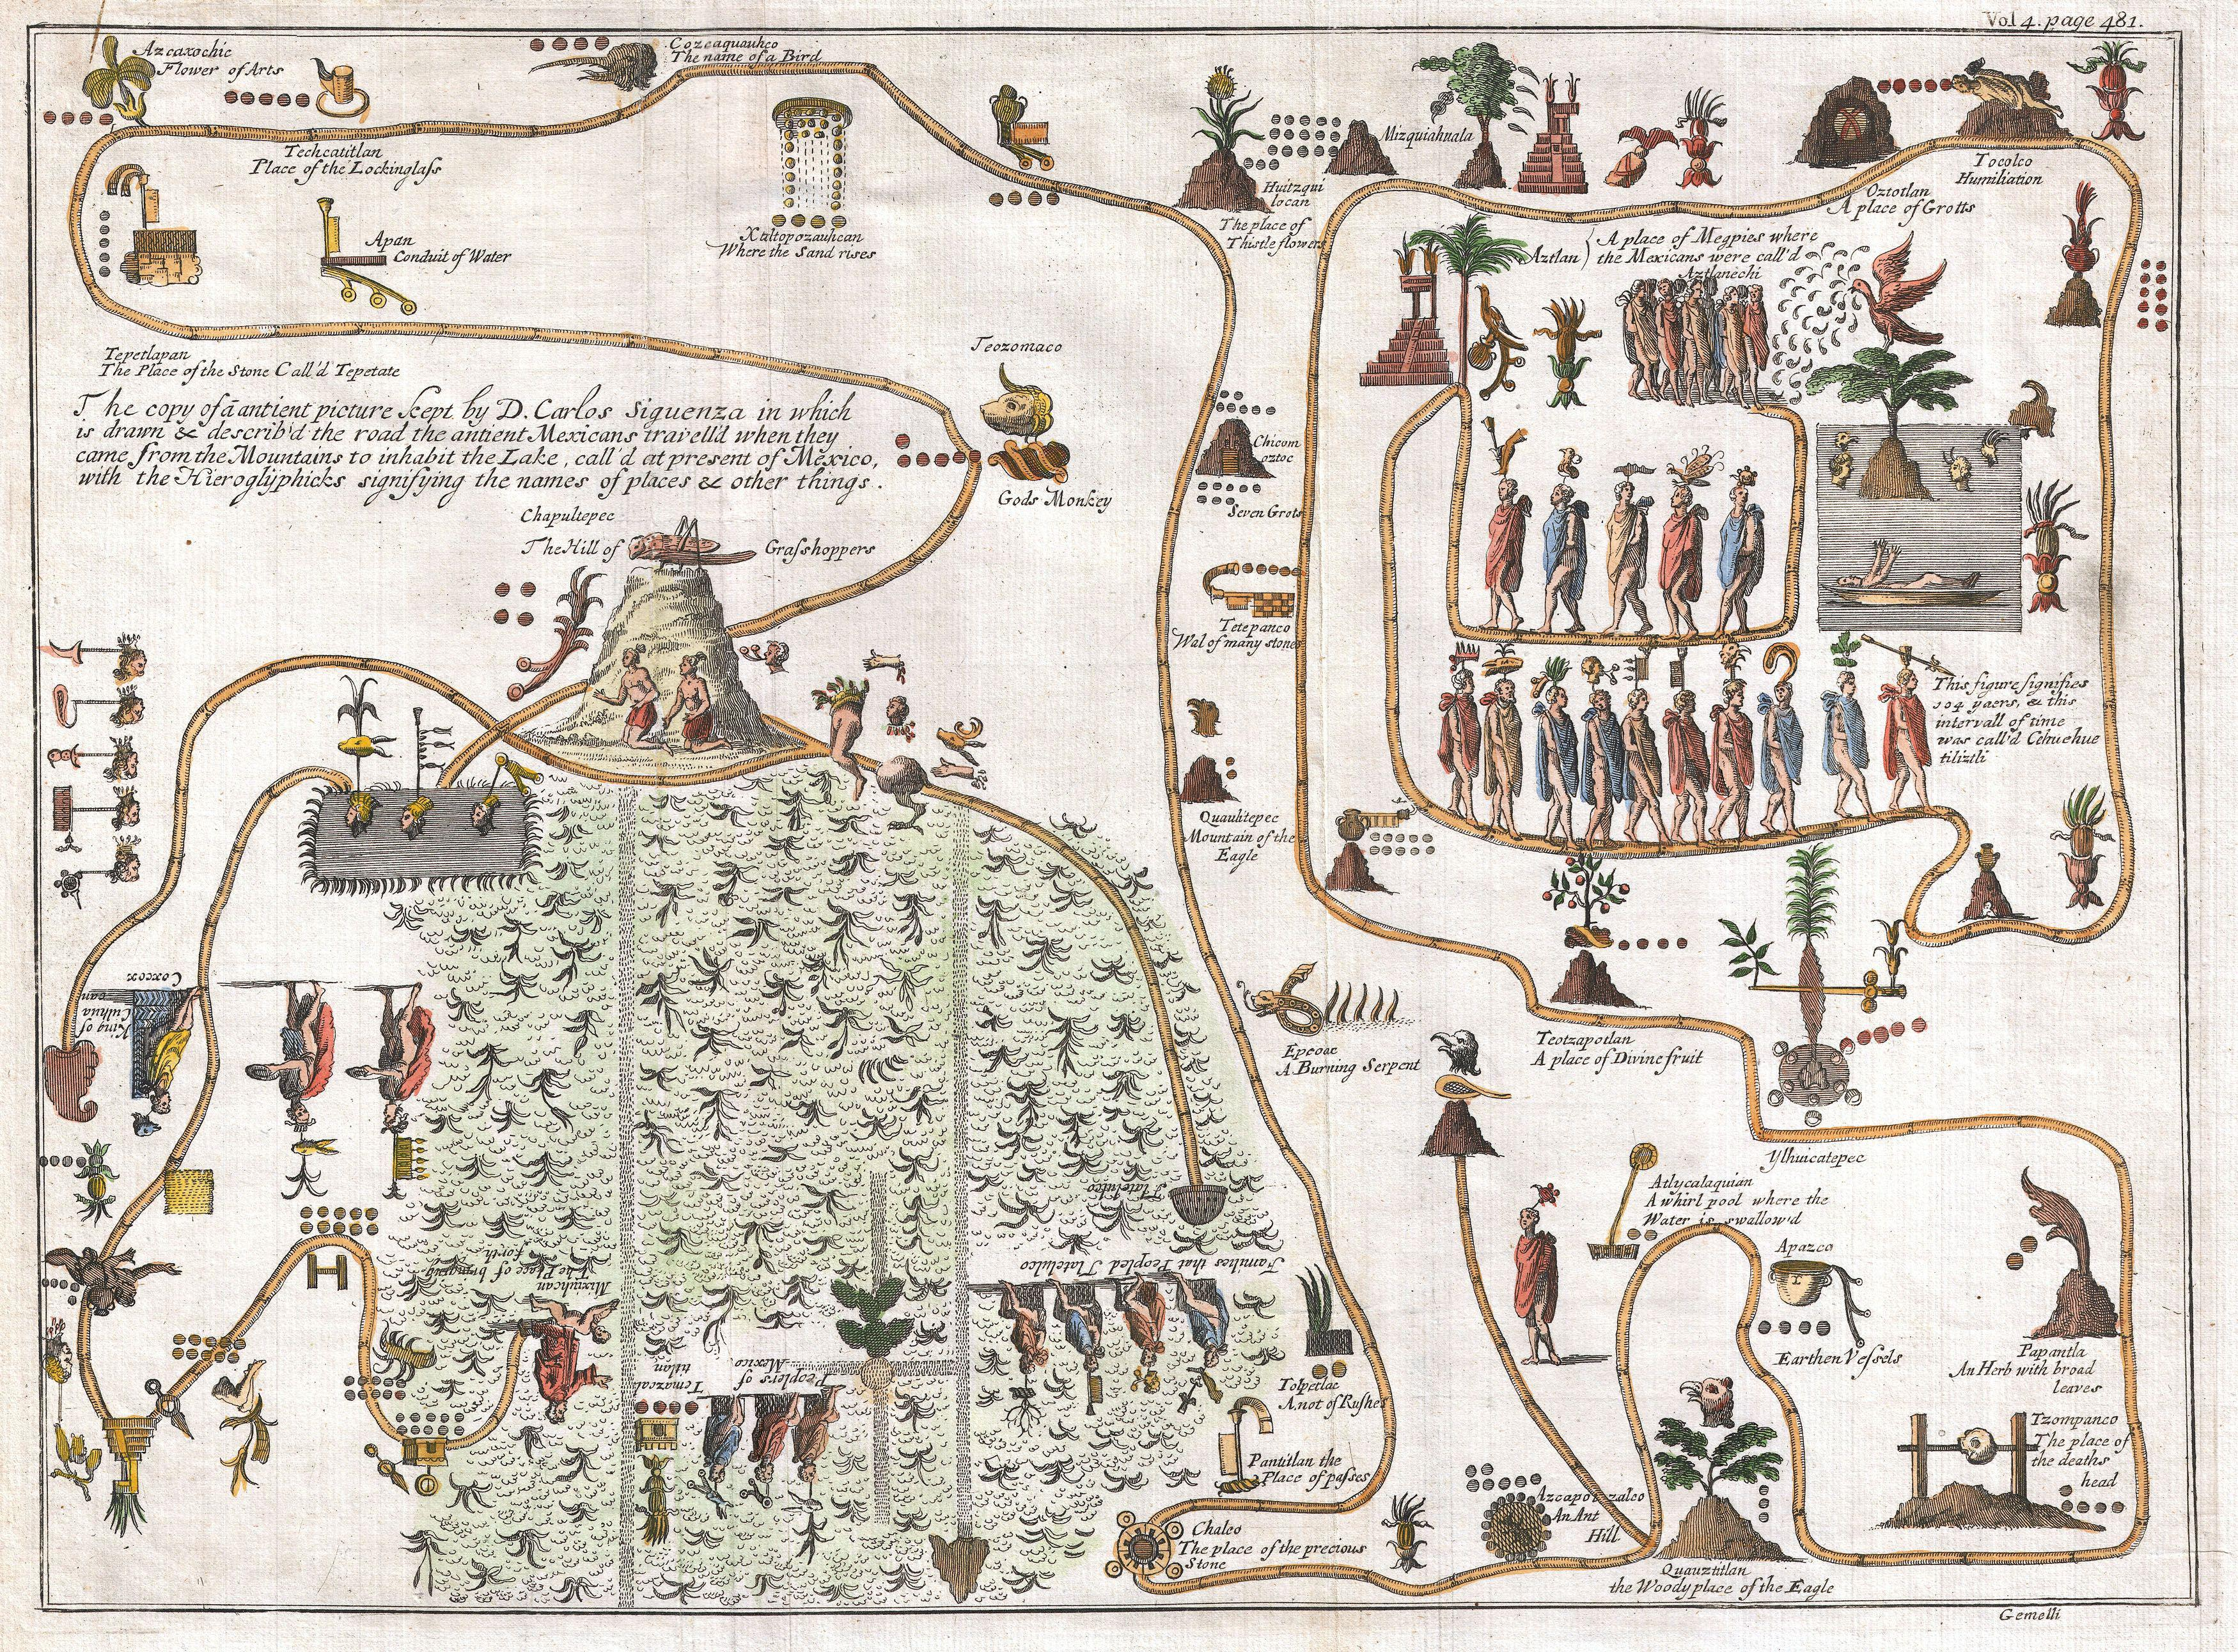 File:1704 Gemelli Map of the Aztec Migration from Aztlan to Chapultapec -  Geographicus -